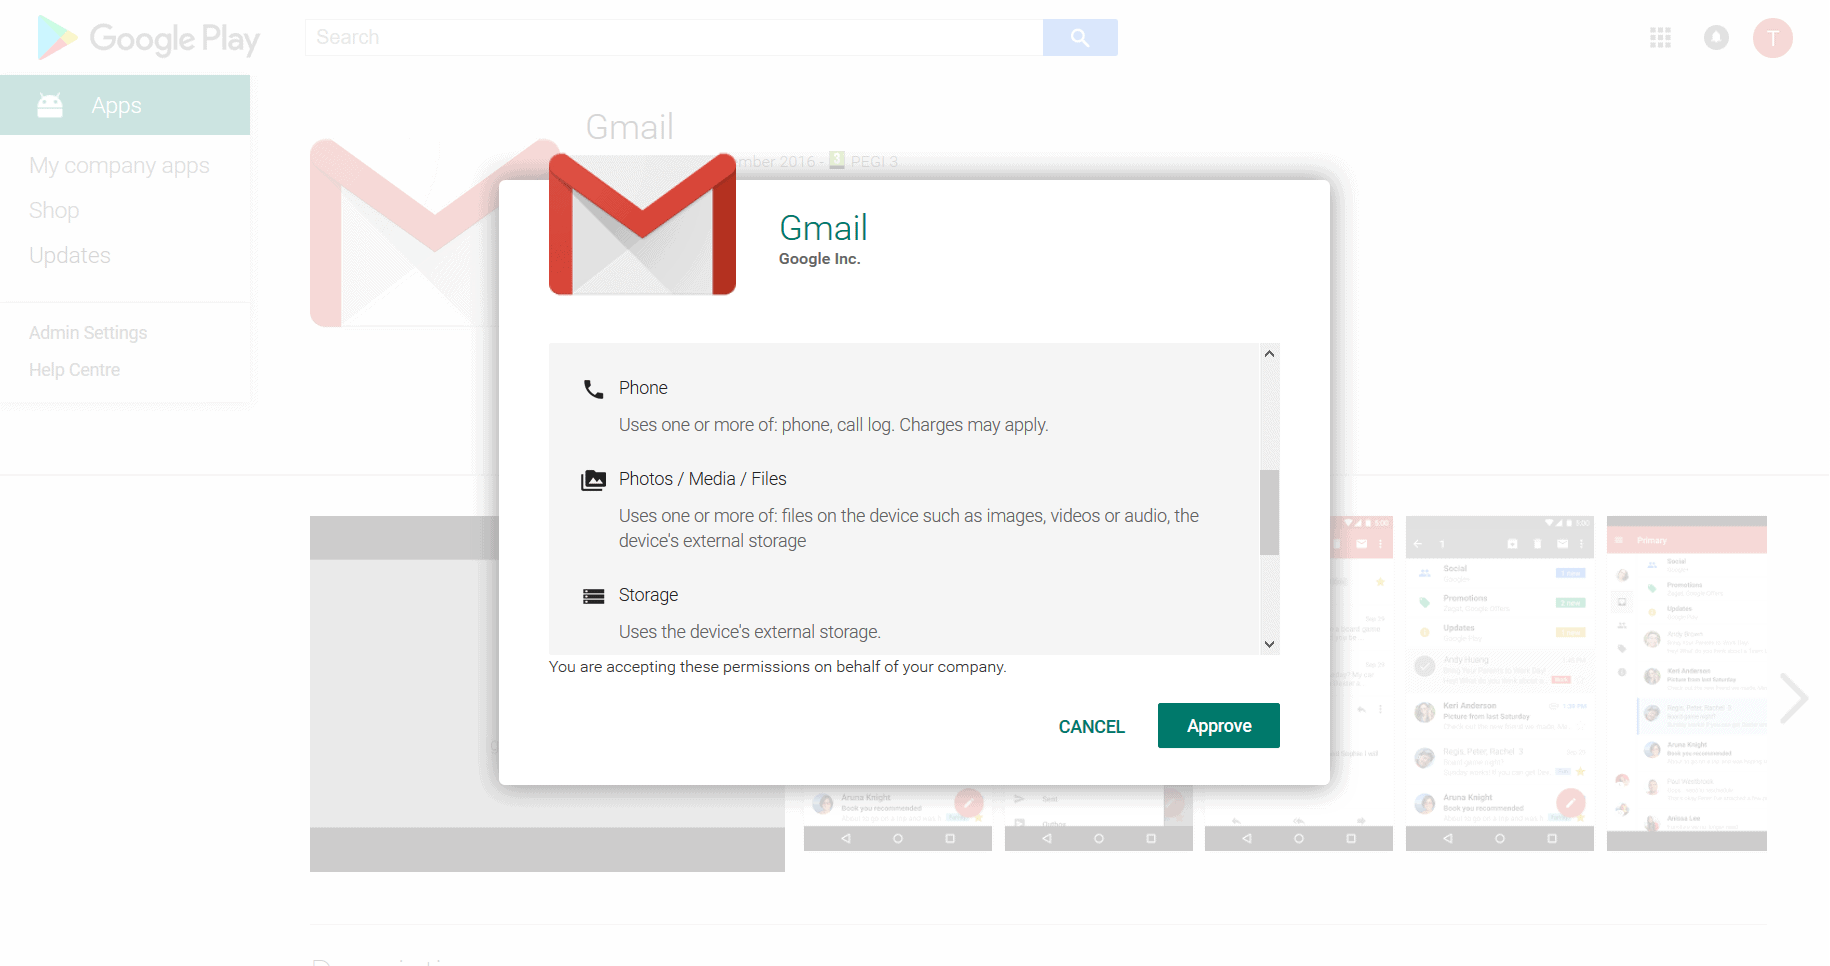 approve-gmail-2017-01-09-2